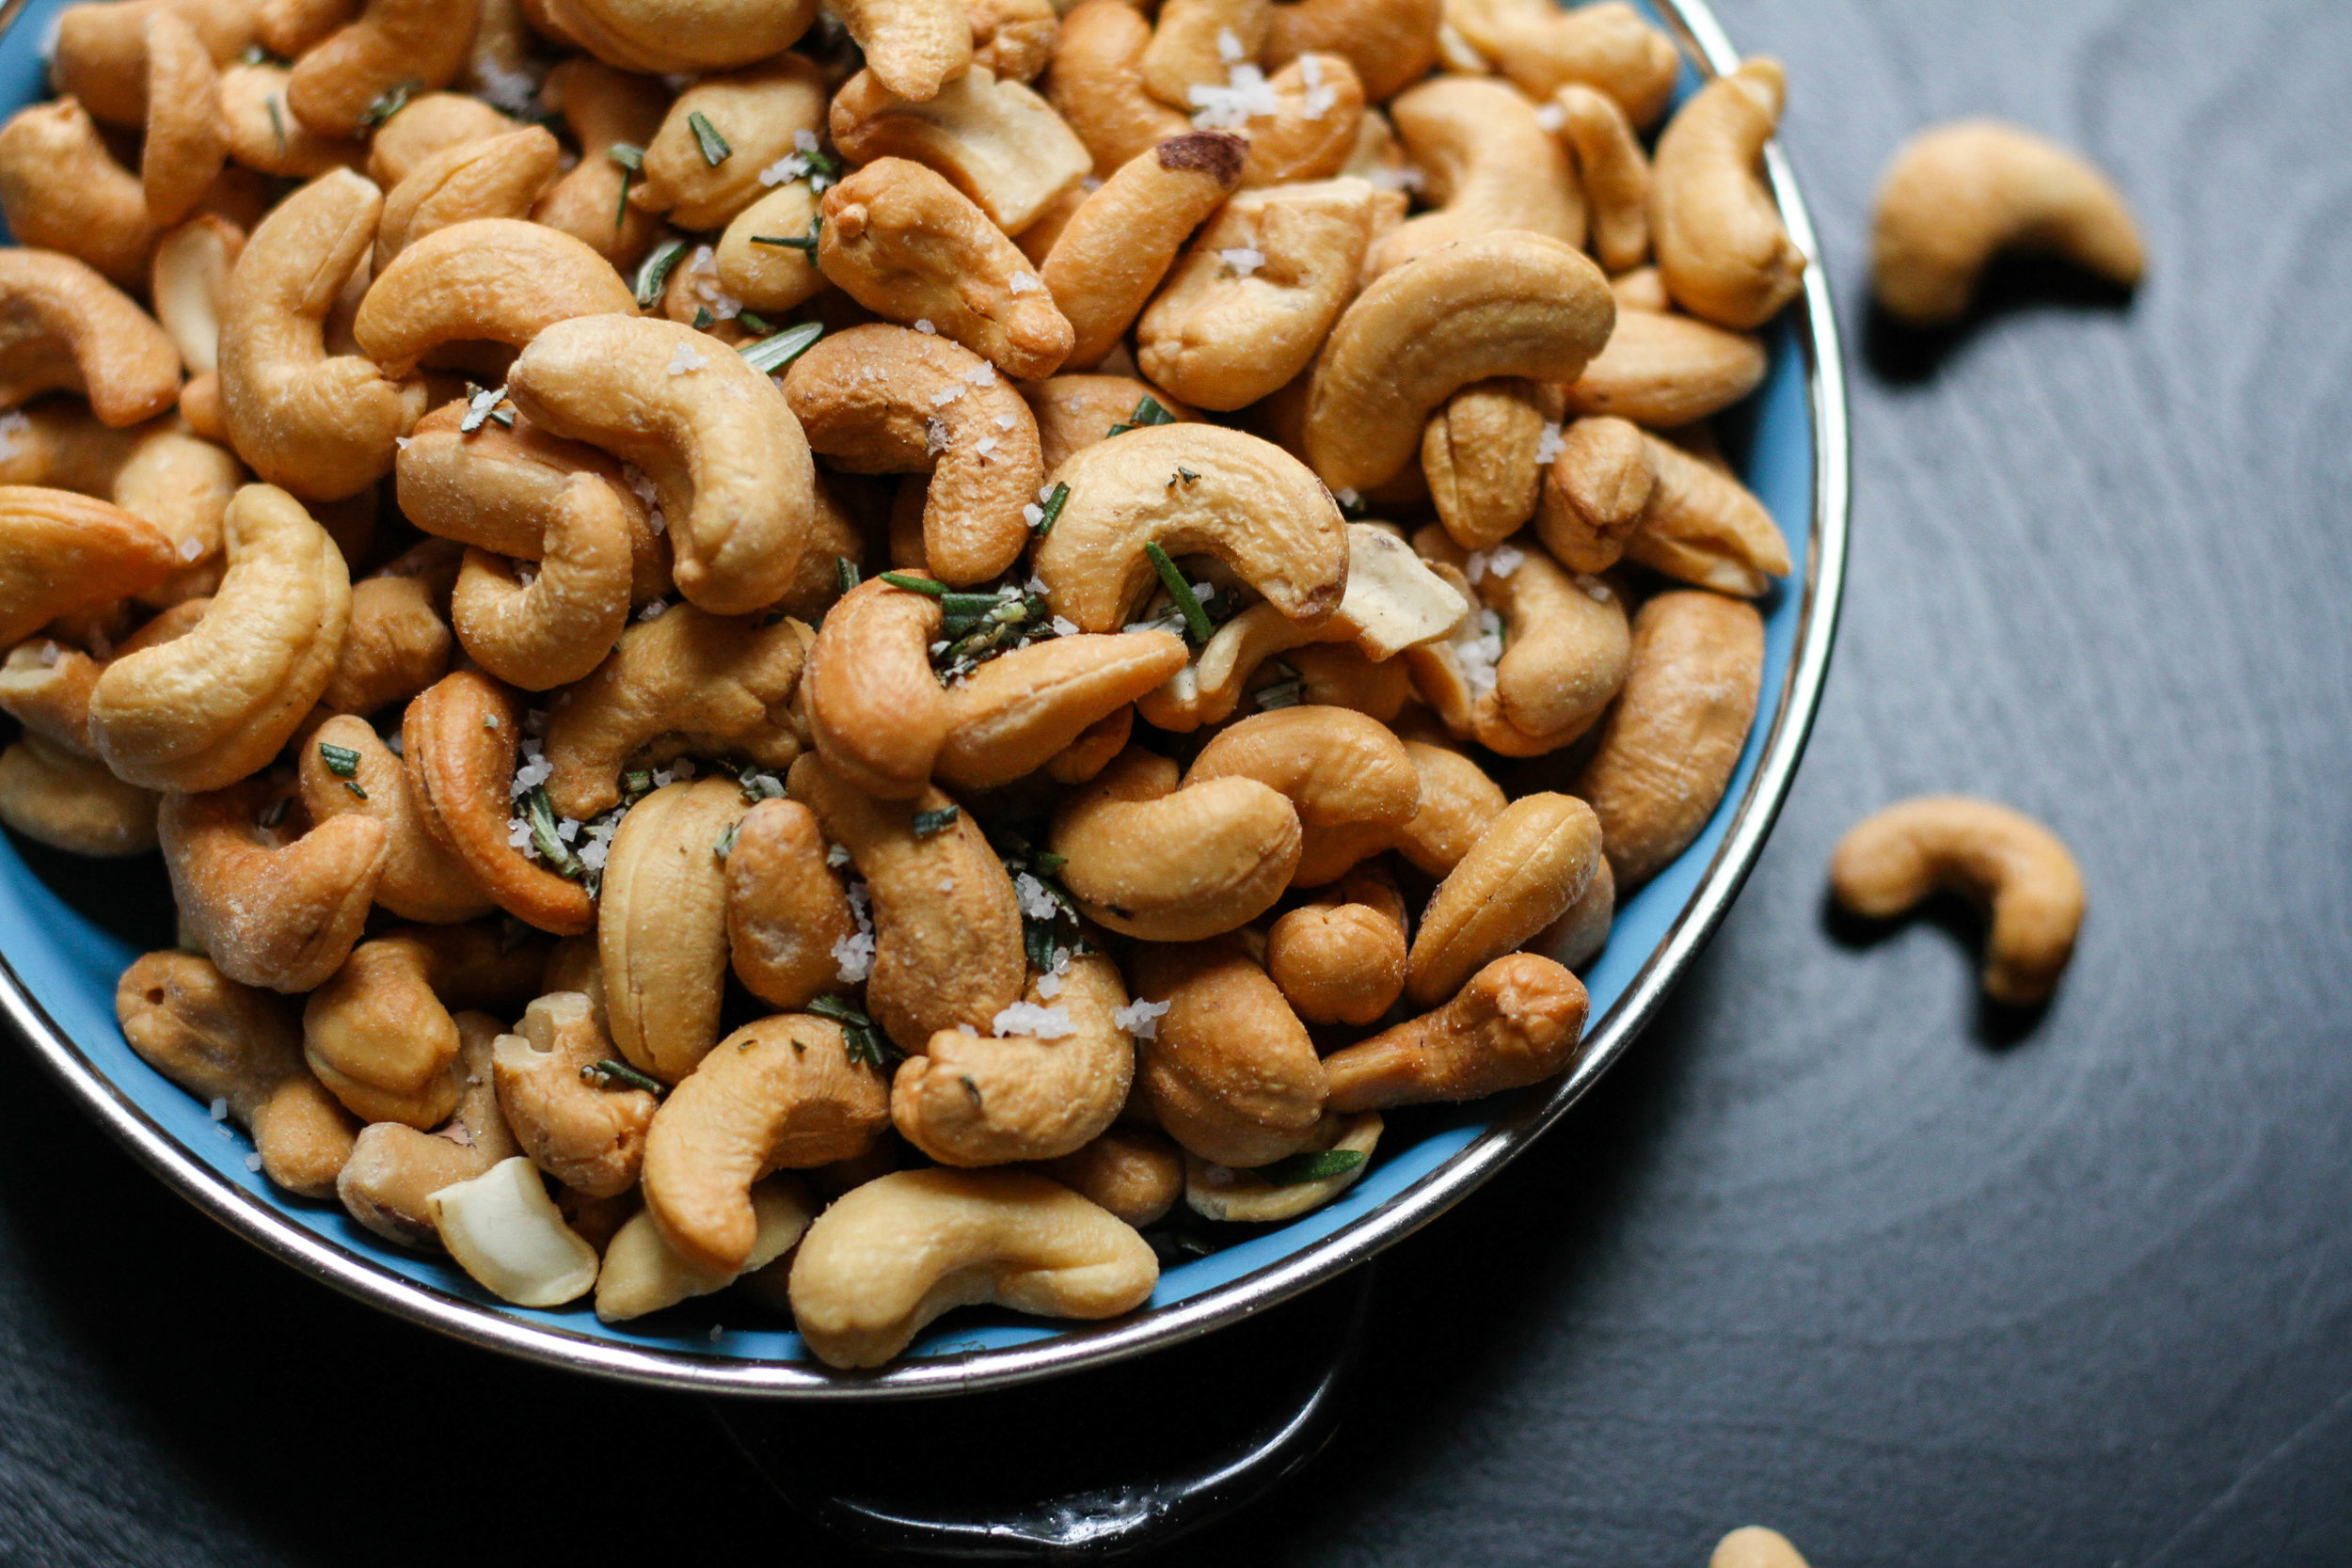 Cashews - Cashews are high in Vitamin B6, Vitamin E, Vitamin K, as well as copper, zinc, iron, phosphorus, magnesium and selenium. Cashews are one of the lowest-fiber and highest carbohydrates nuts.